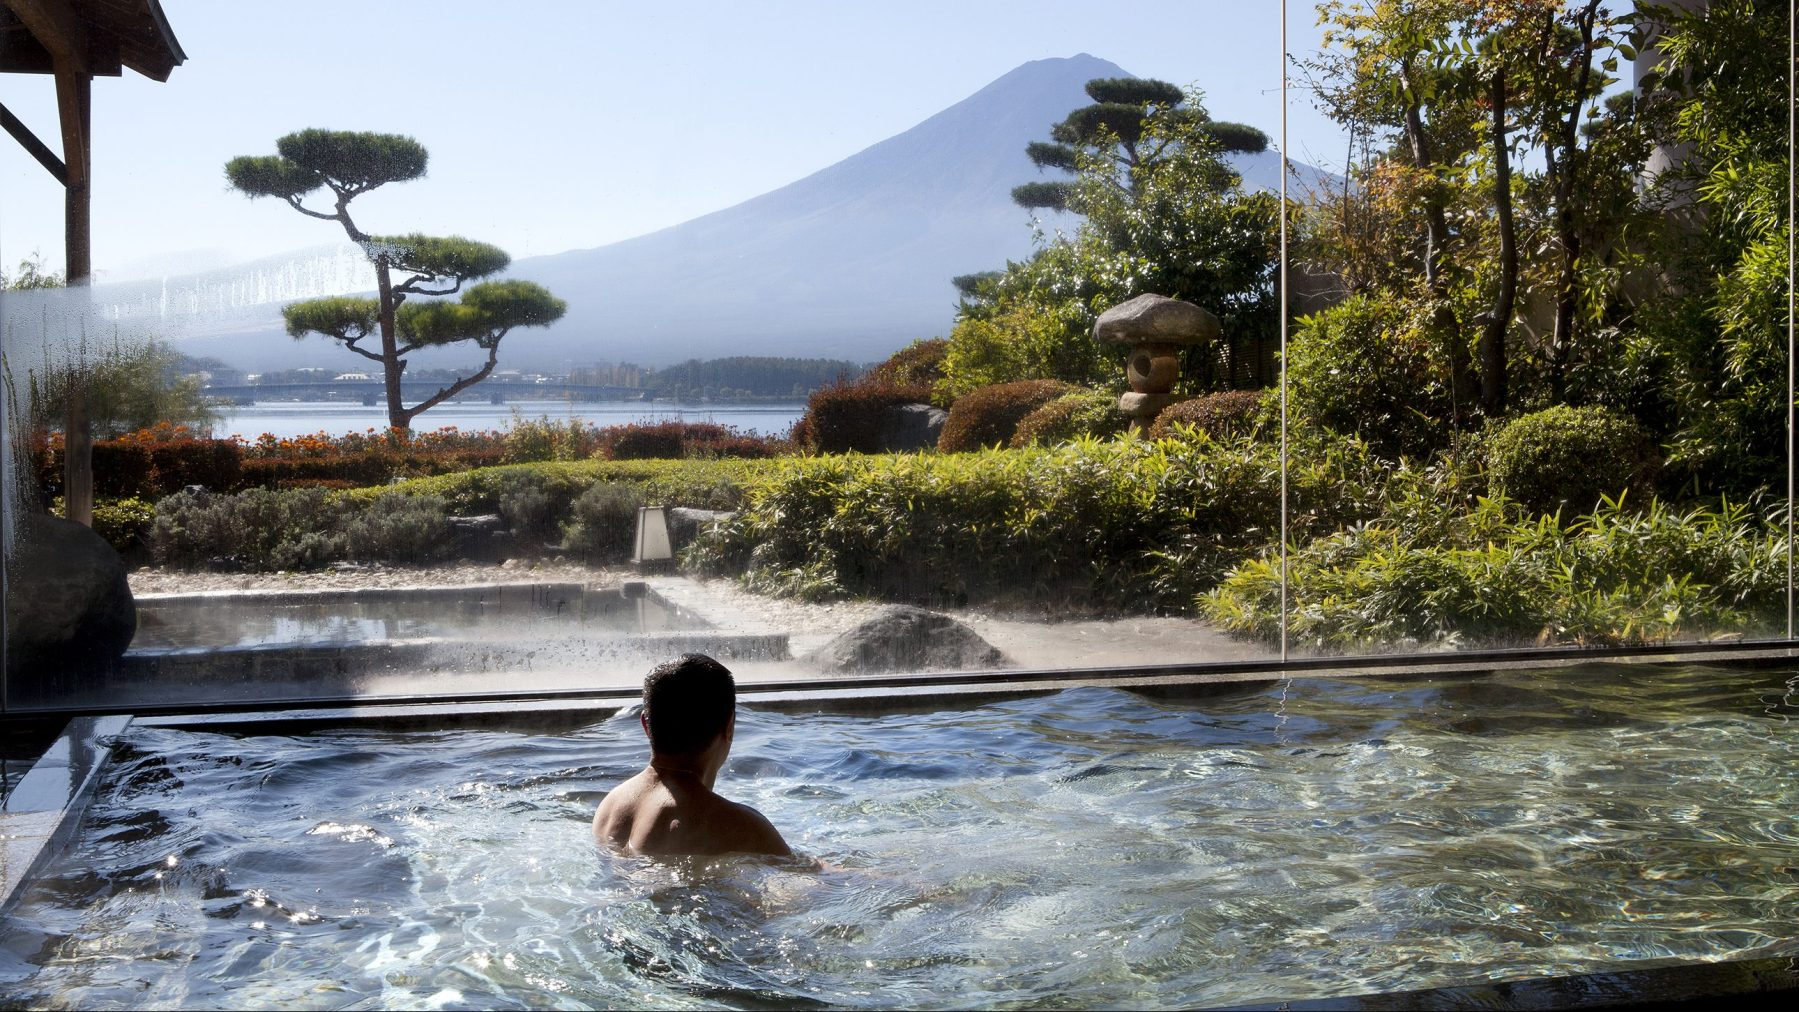 Relax in a Japanese Garden with Kawaguchi Lake  and Mount Fuji in background (Getty Images)